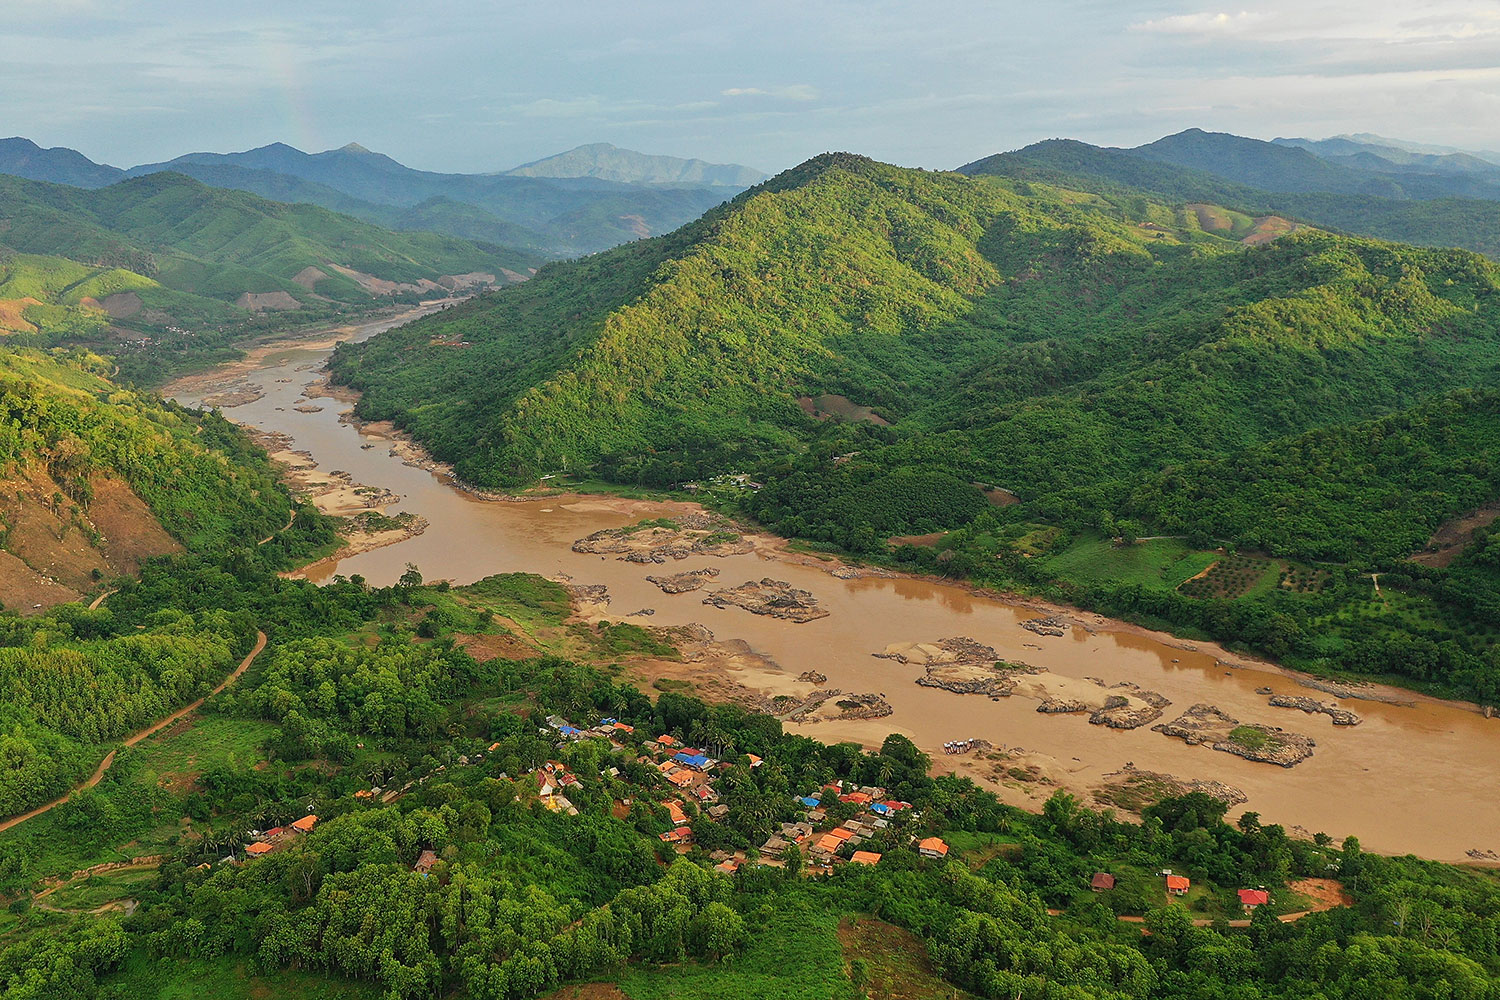 A section of the Mekong River in Wiang Kaen district, Chiang Rai province opposite Laos.